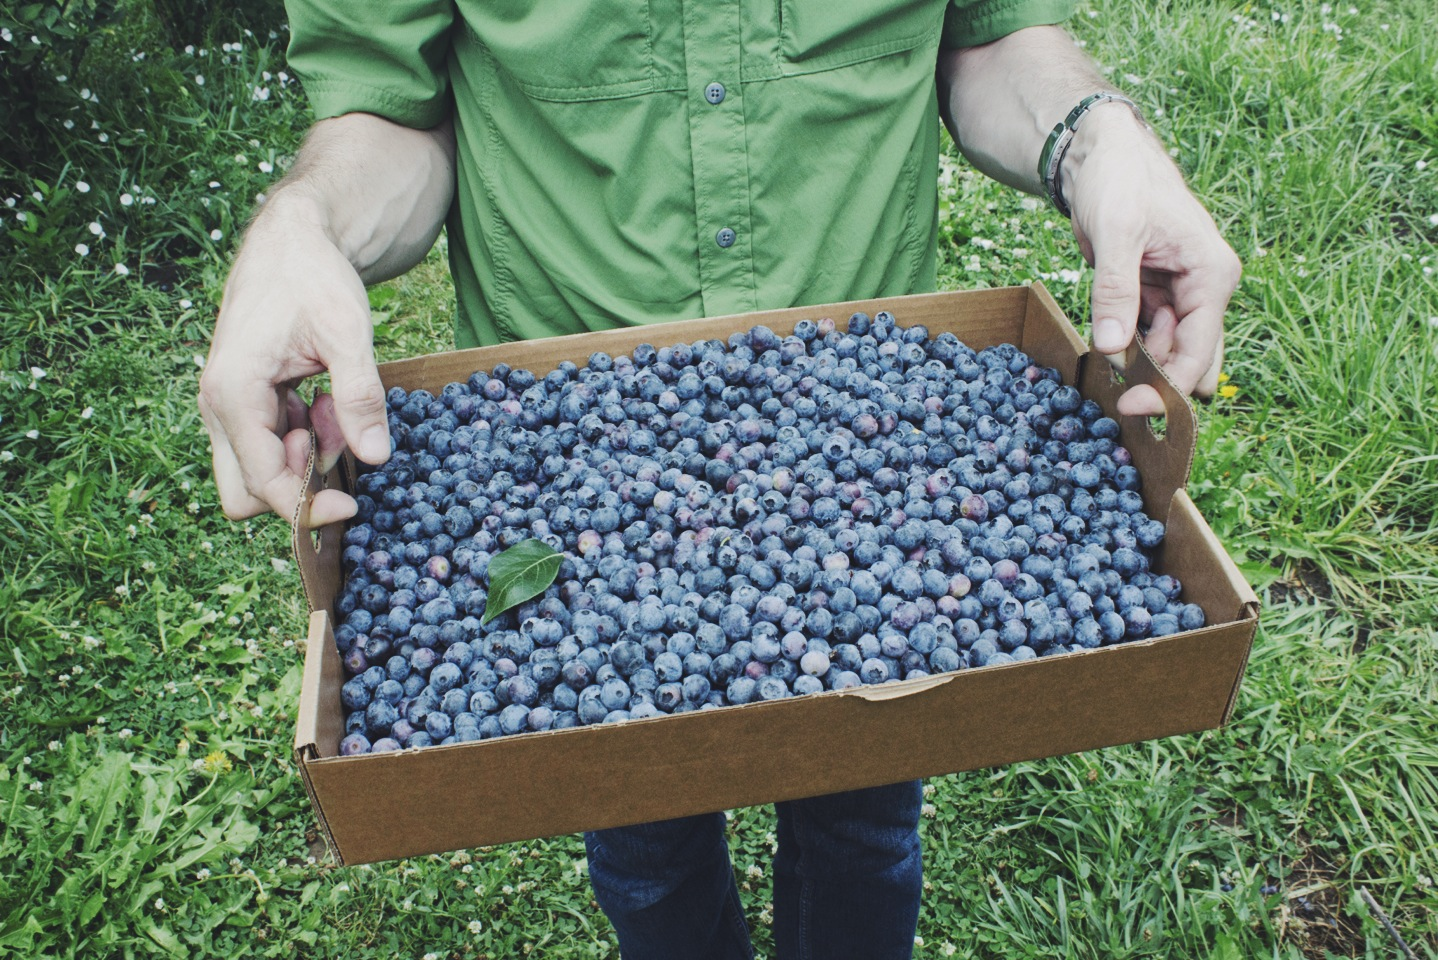 Blueberry picking at Sauvie Island Farms by Eva Moon Press